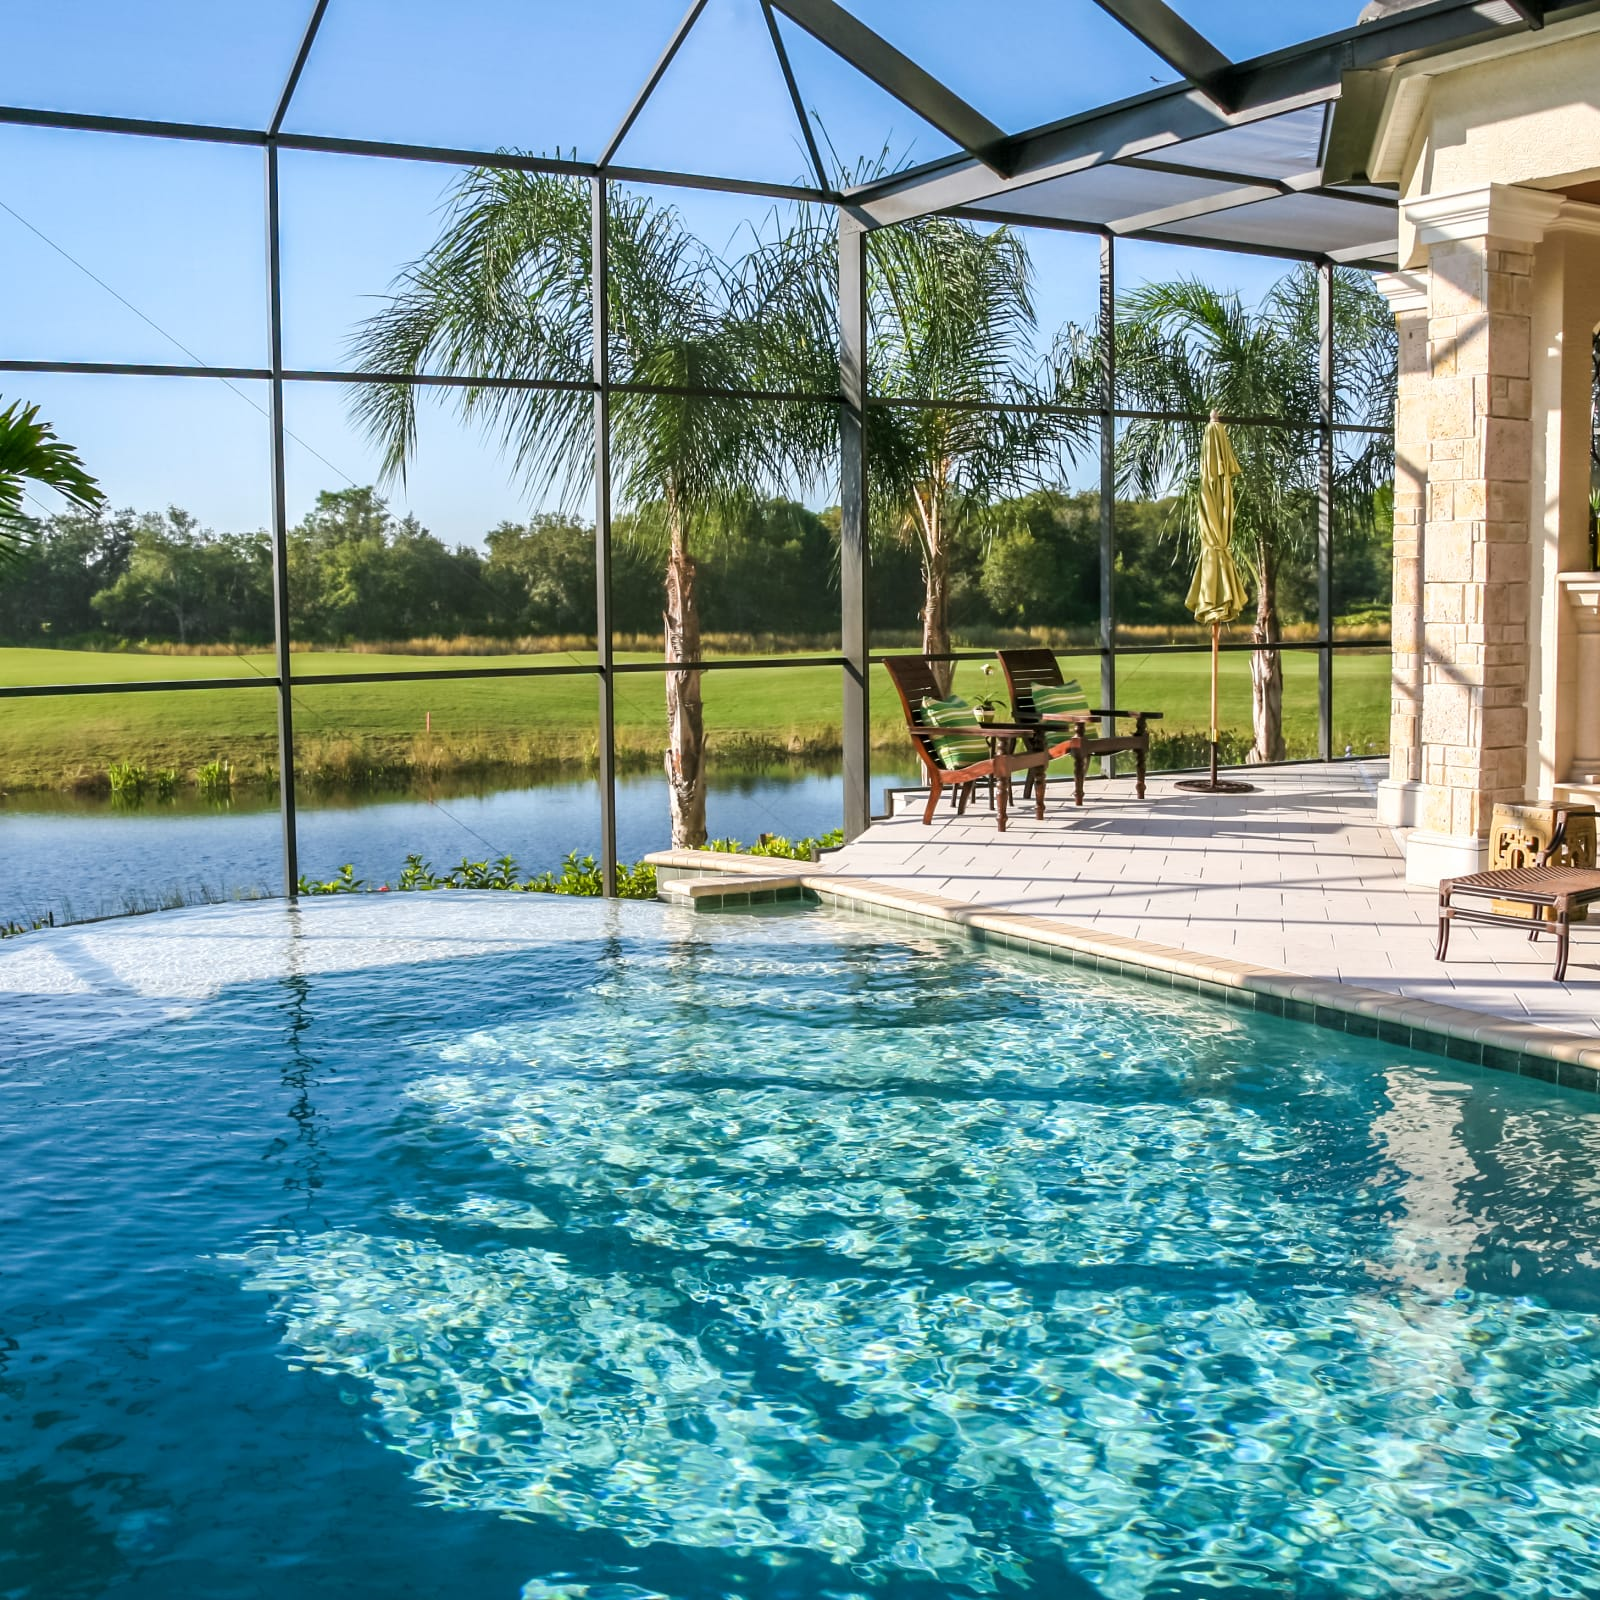 How A Pool Affects Your Homeowners Insurance - ValuePenguin